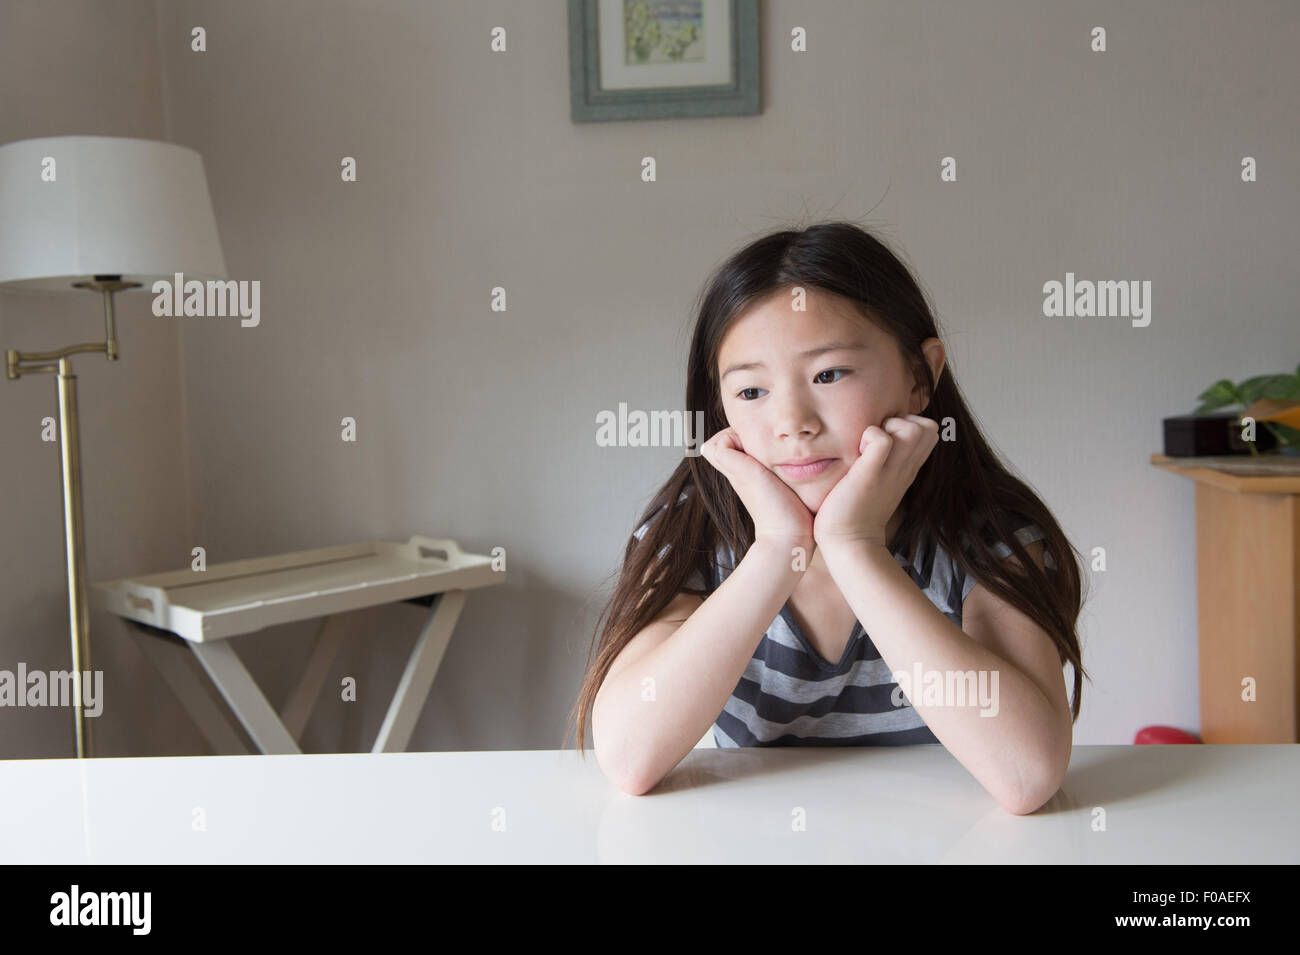 Fed up girl at table with chin in hands - Stock Image